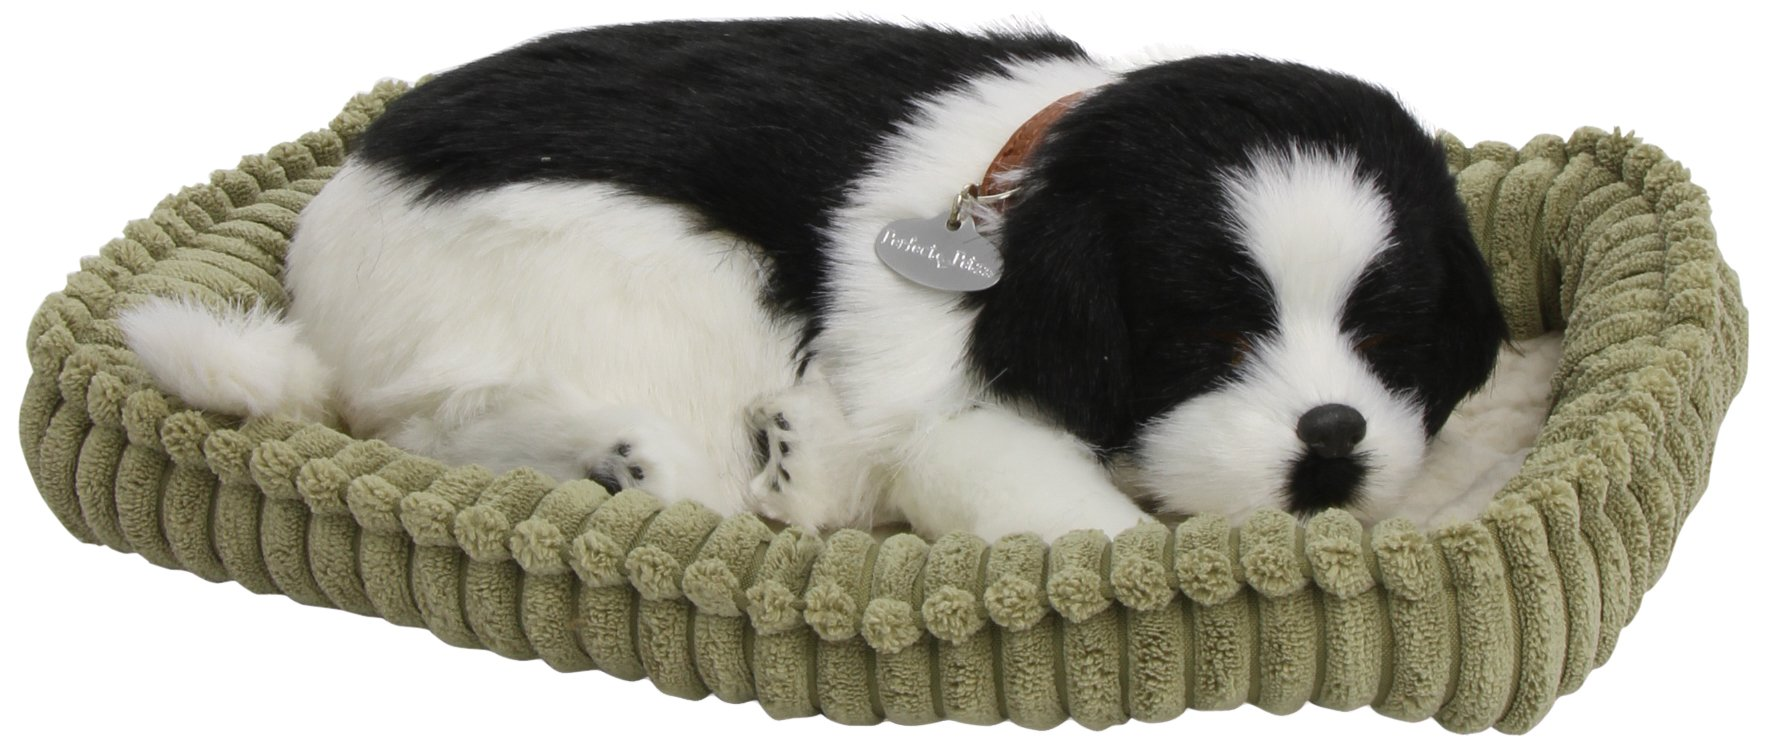 New Perfect Petzzz Border Collie Handcrafted In 100% Synthetic Materials Lots Of Love And Cuddles